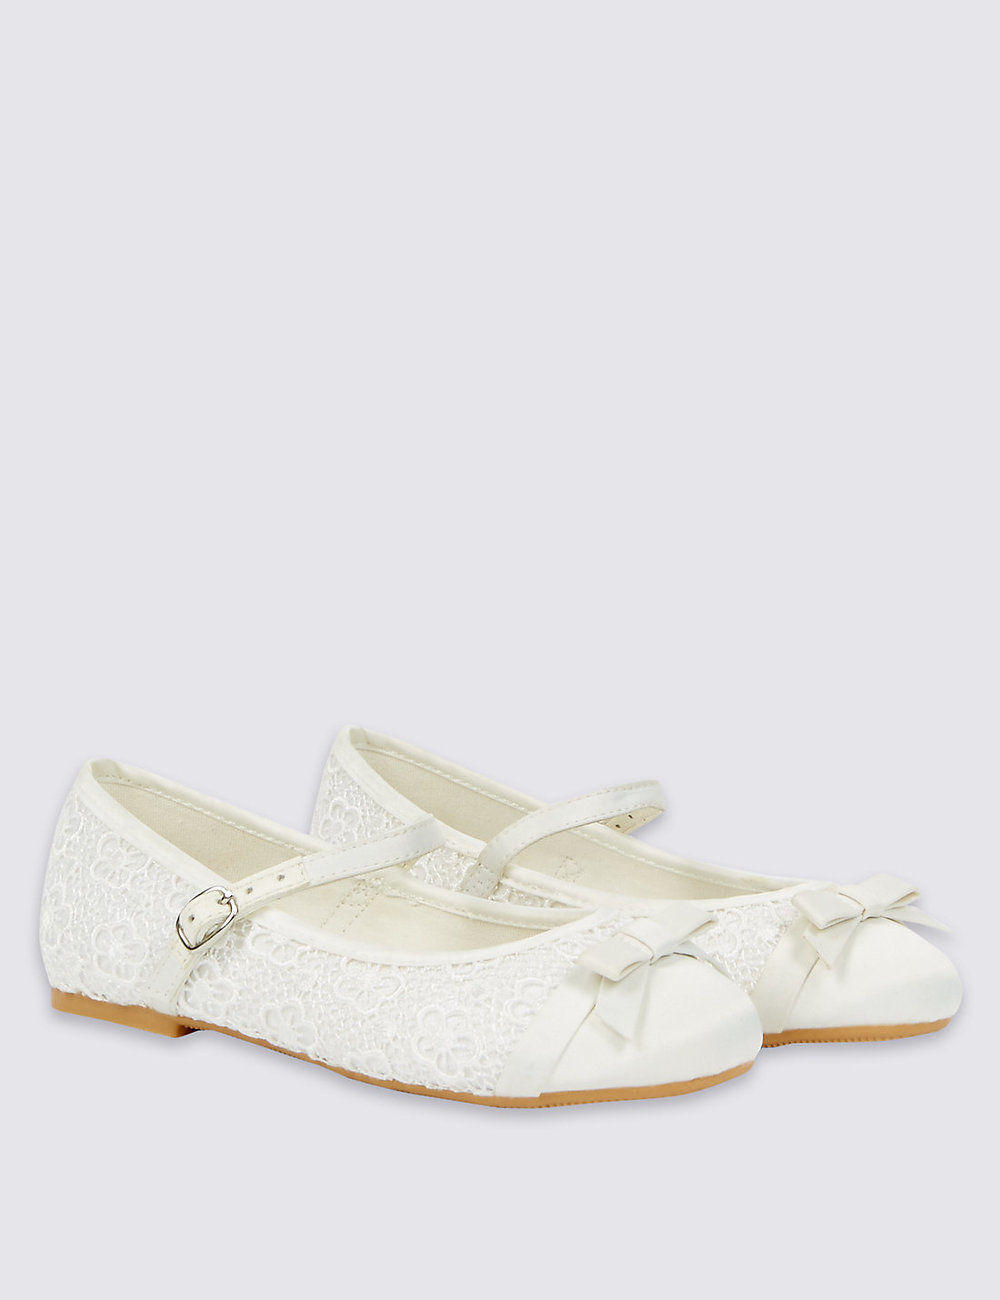 Ballerina Bridesmaid Shoes at M&S